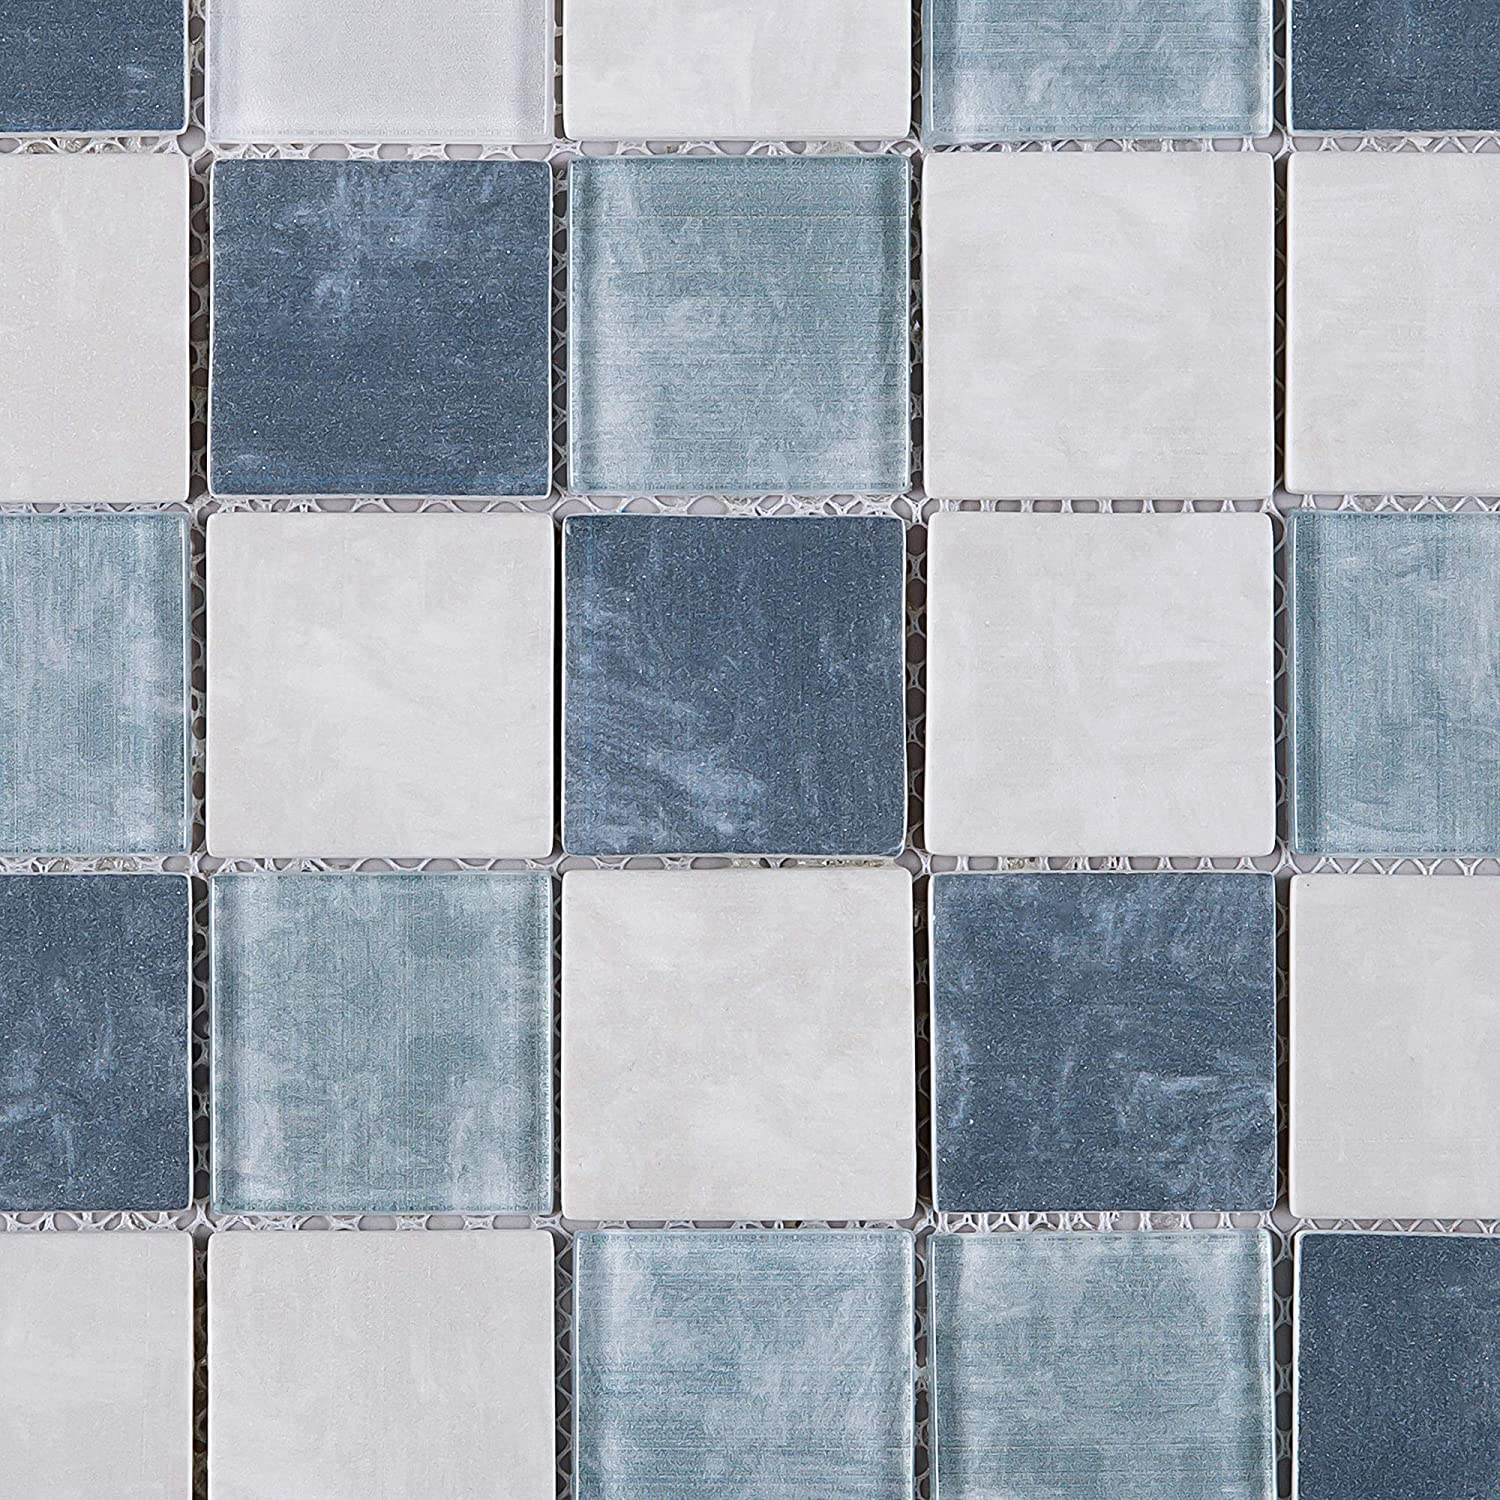 - Amazon.com: TREGLG-01 Blue And White 2x2 Grid Recycle Glass Mosaic